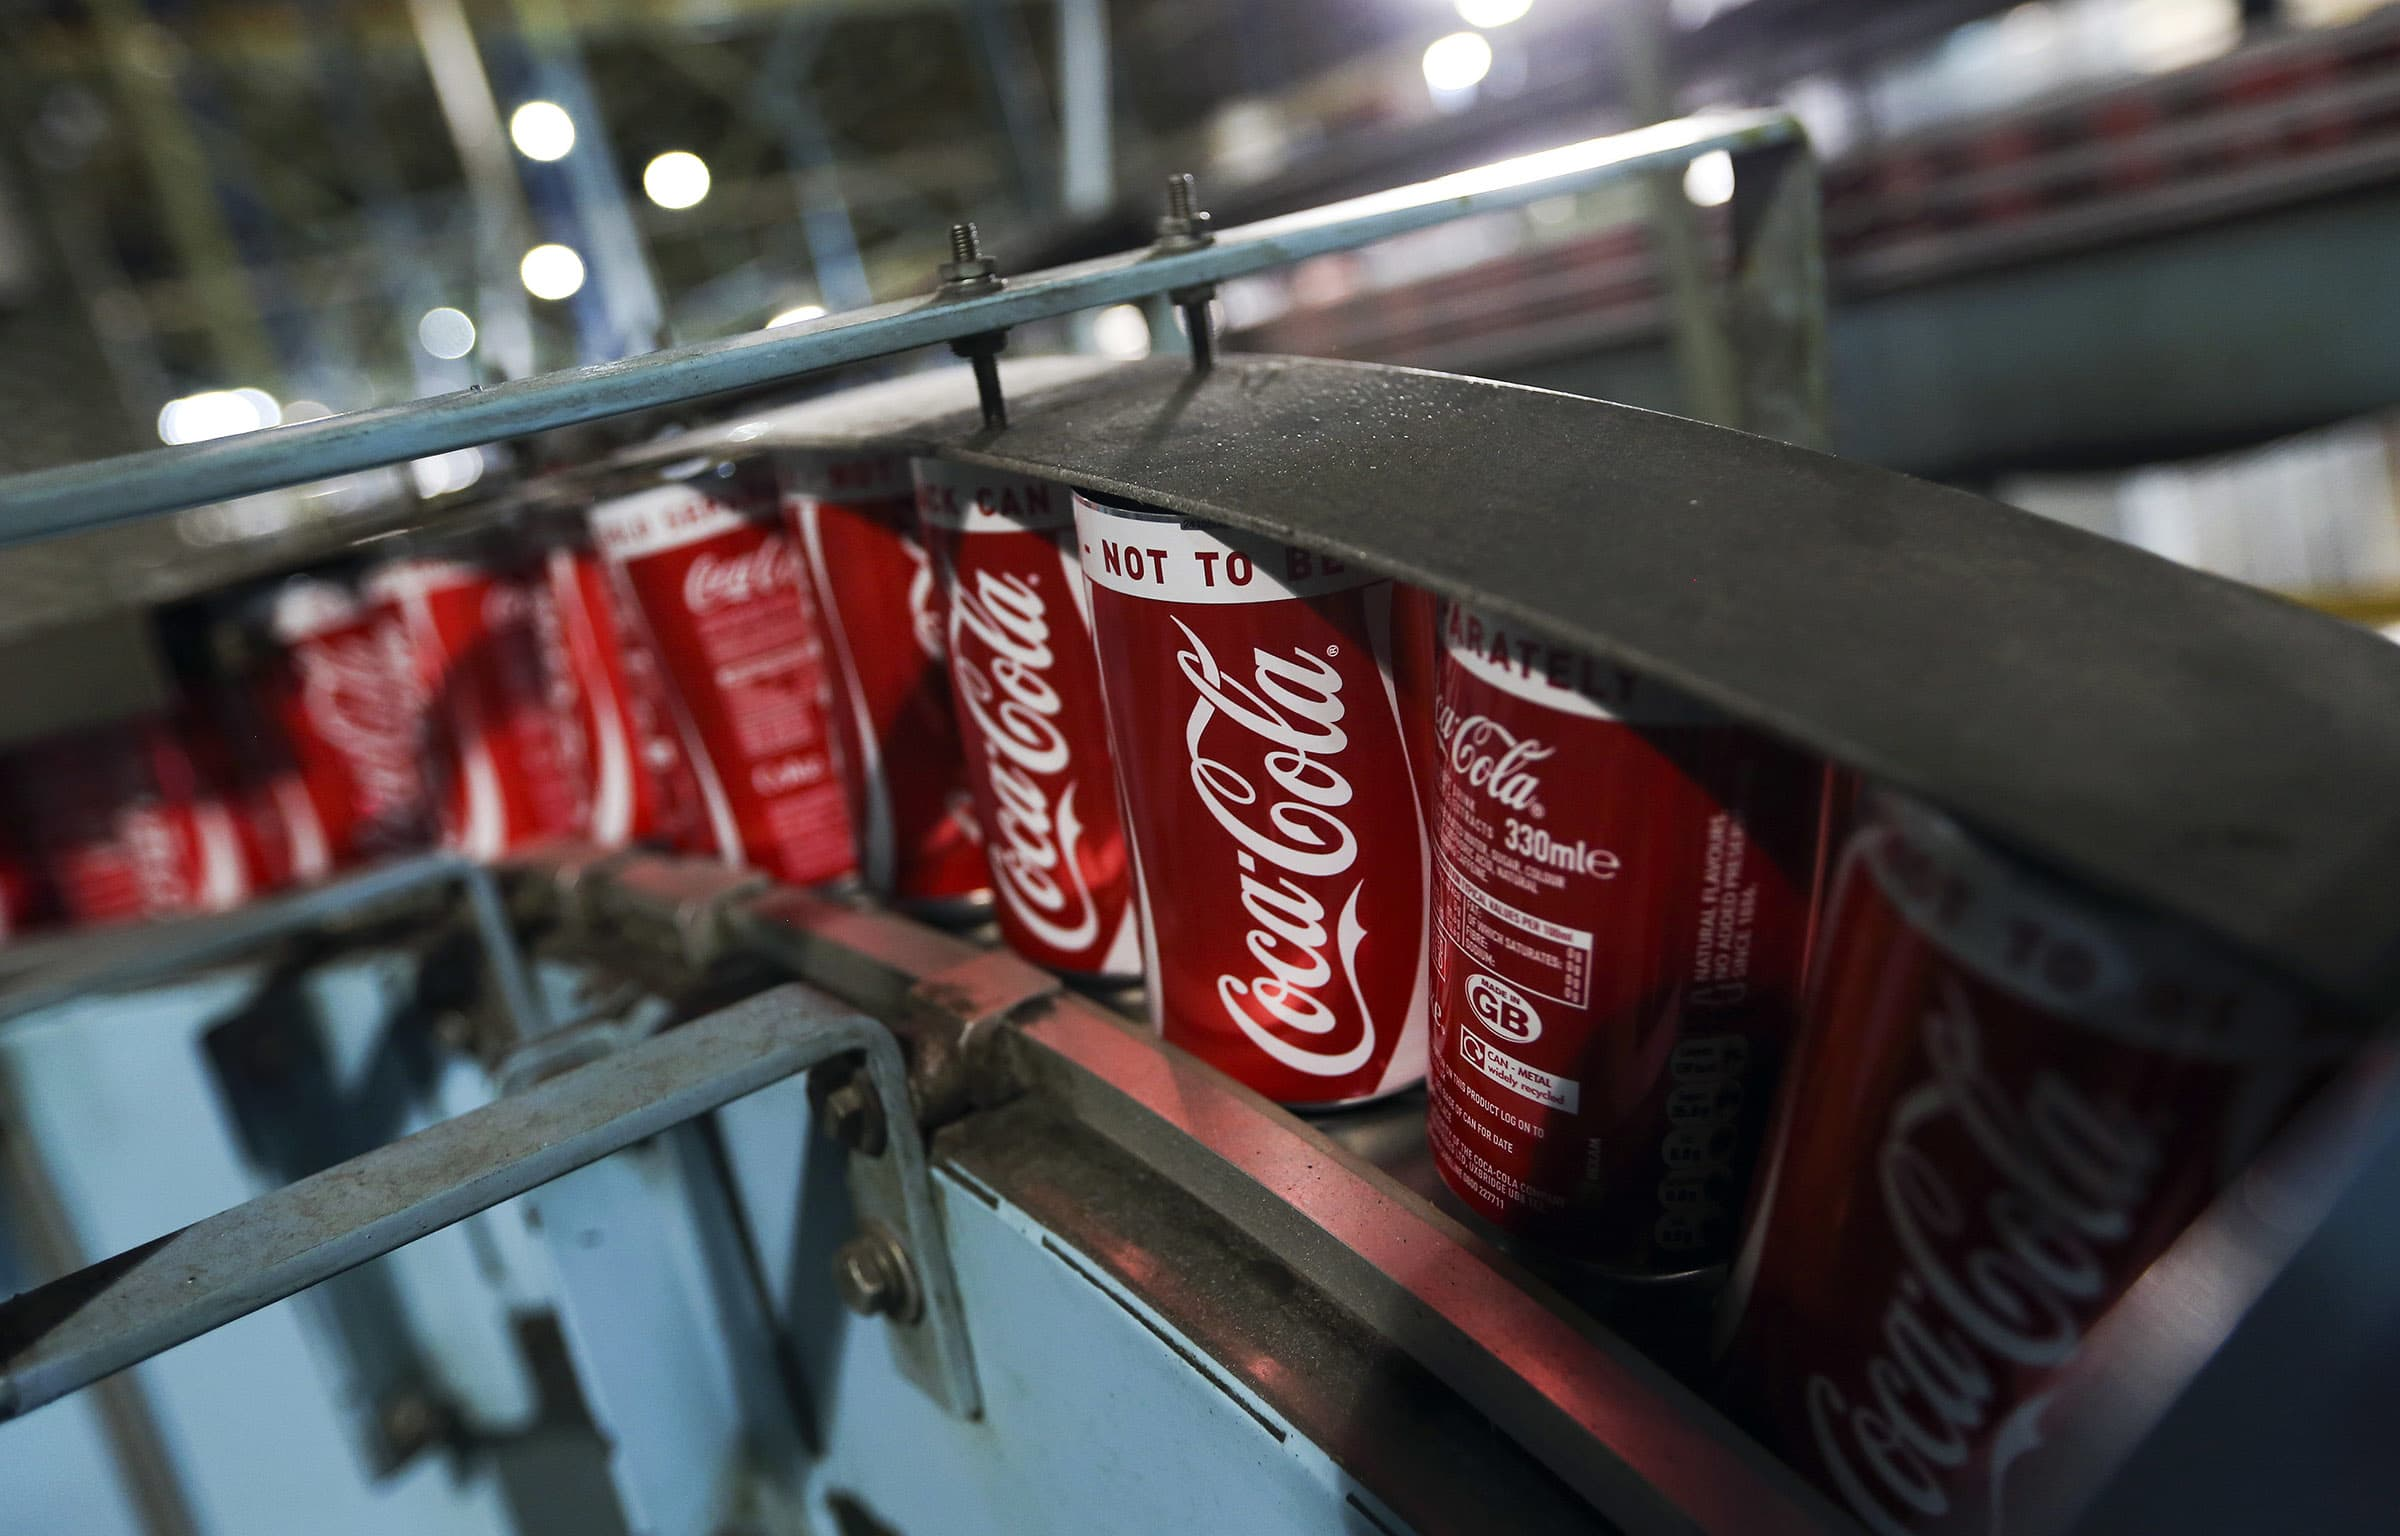 coca-cola-will-cut-2200-jobs-worldwide-as-part-of-restructuring-plan